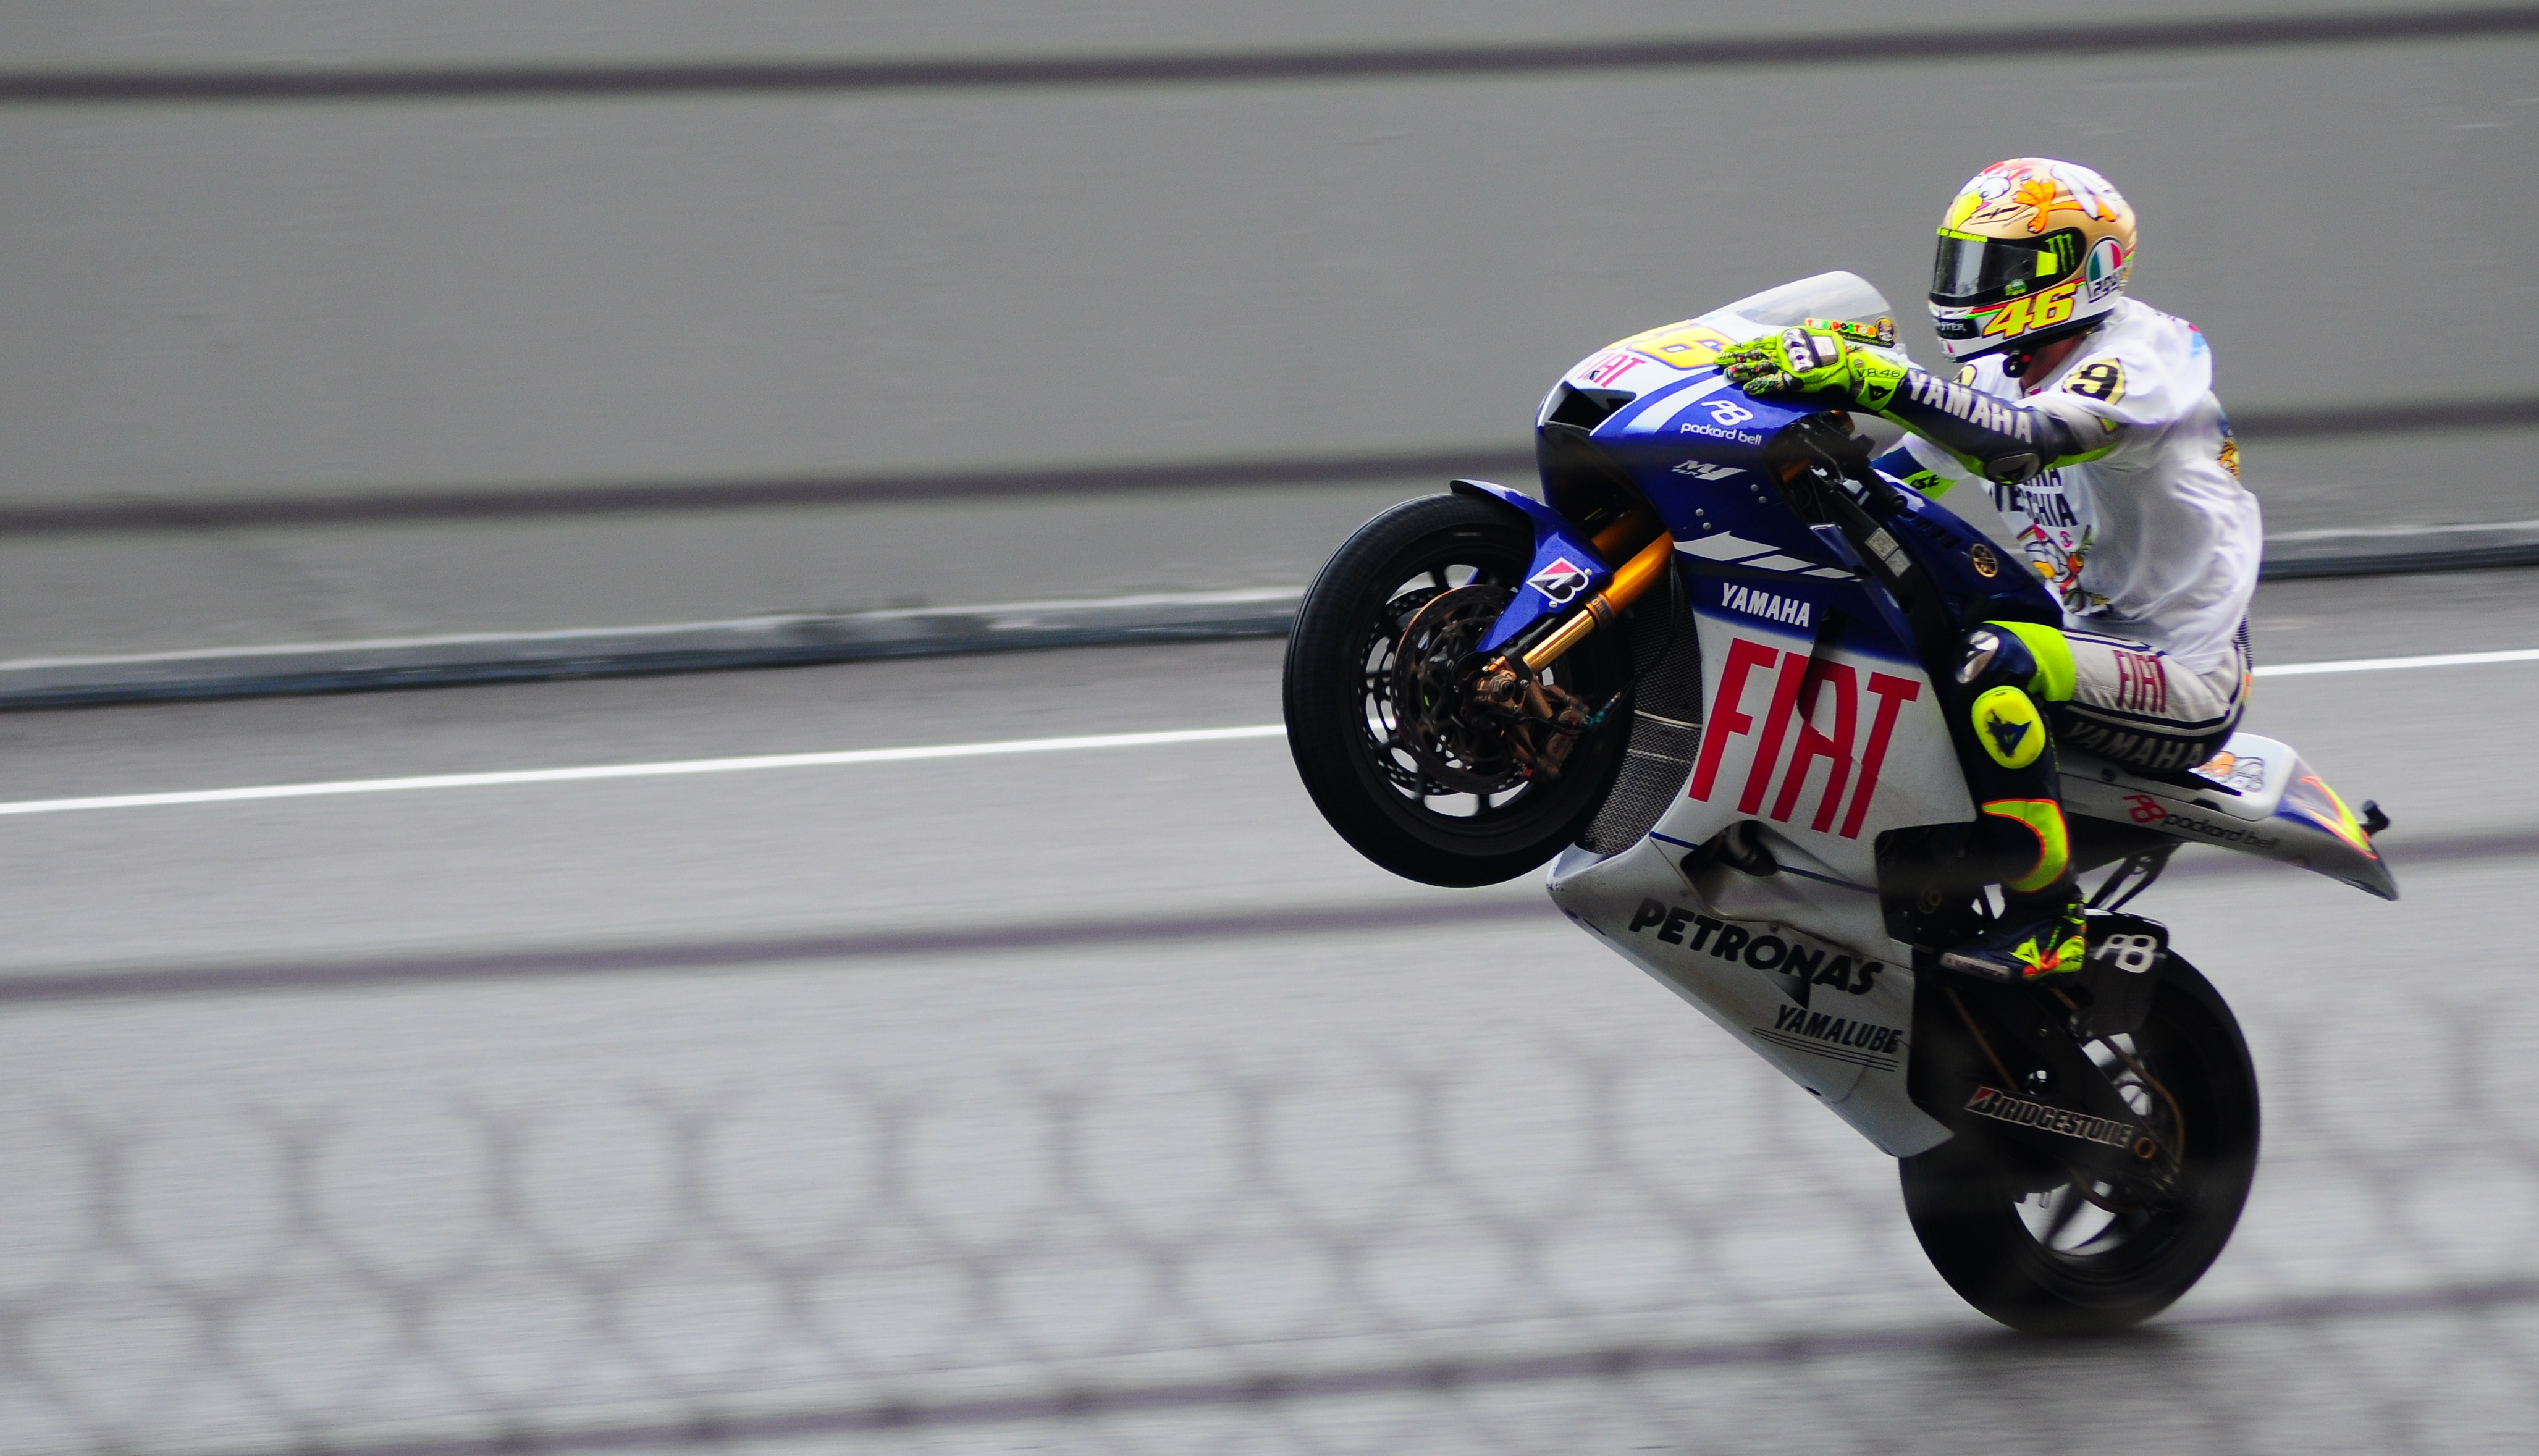 Valentino Rossi image VR 46 HD wallpapers and backgrounds photos